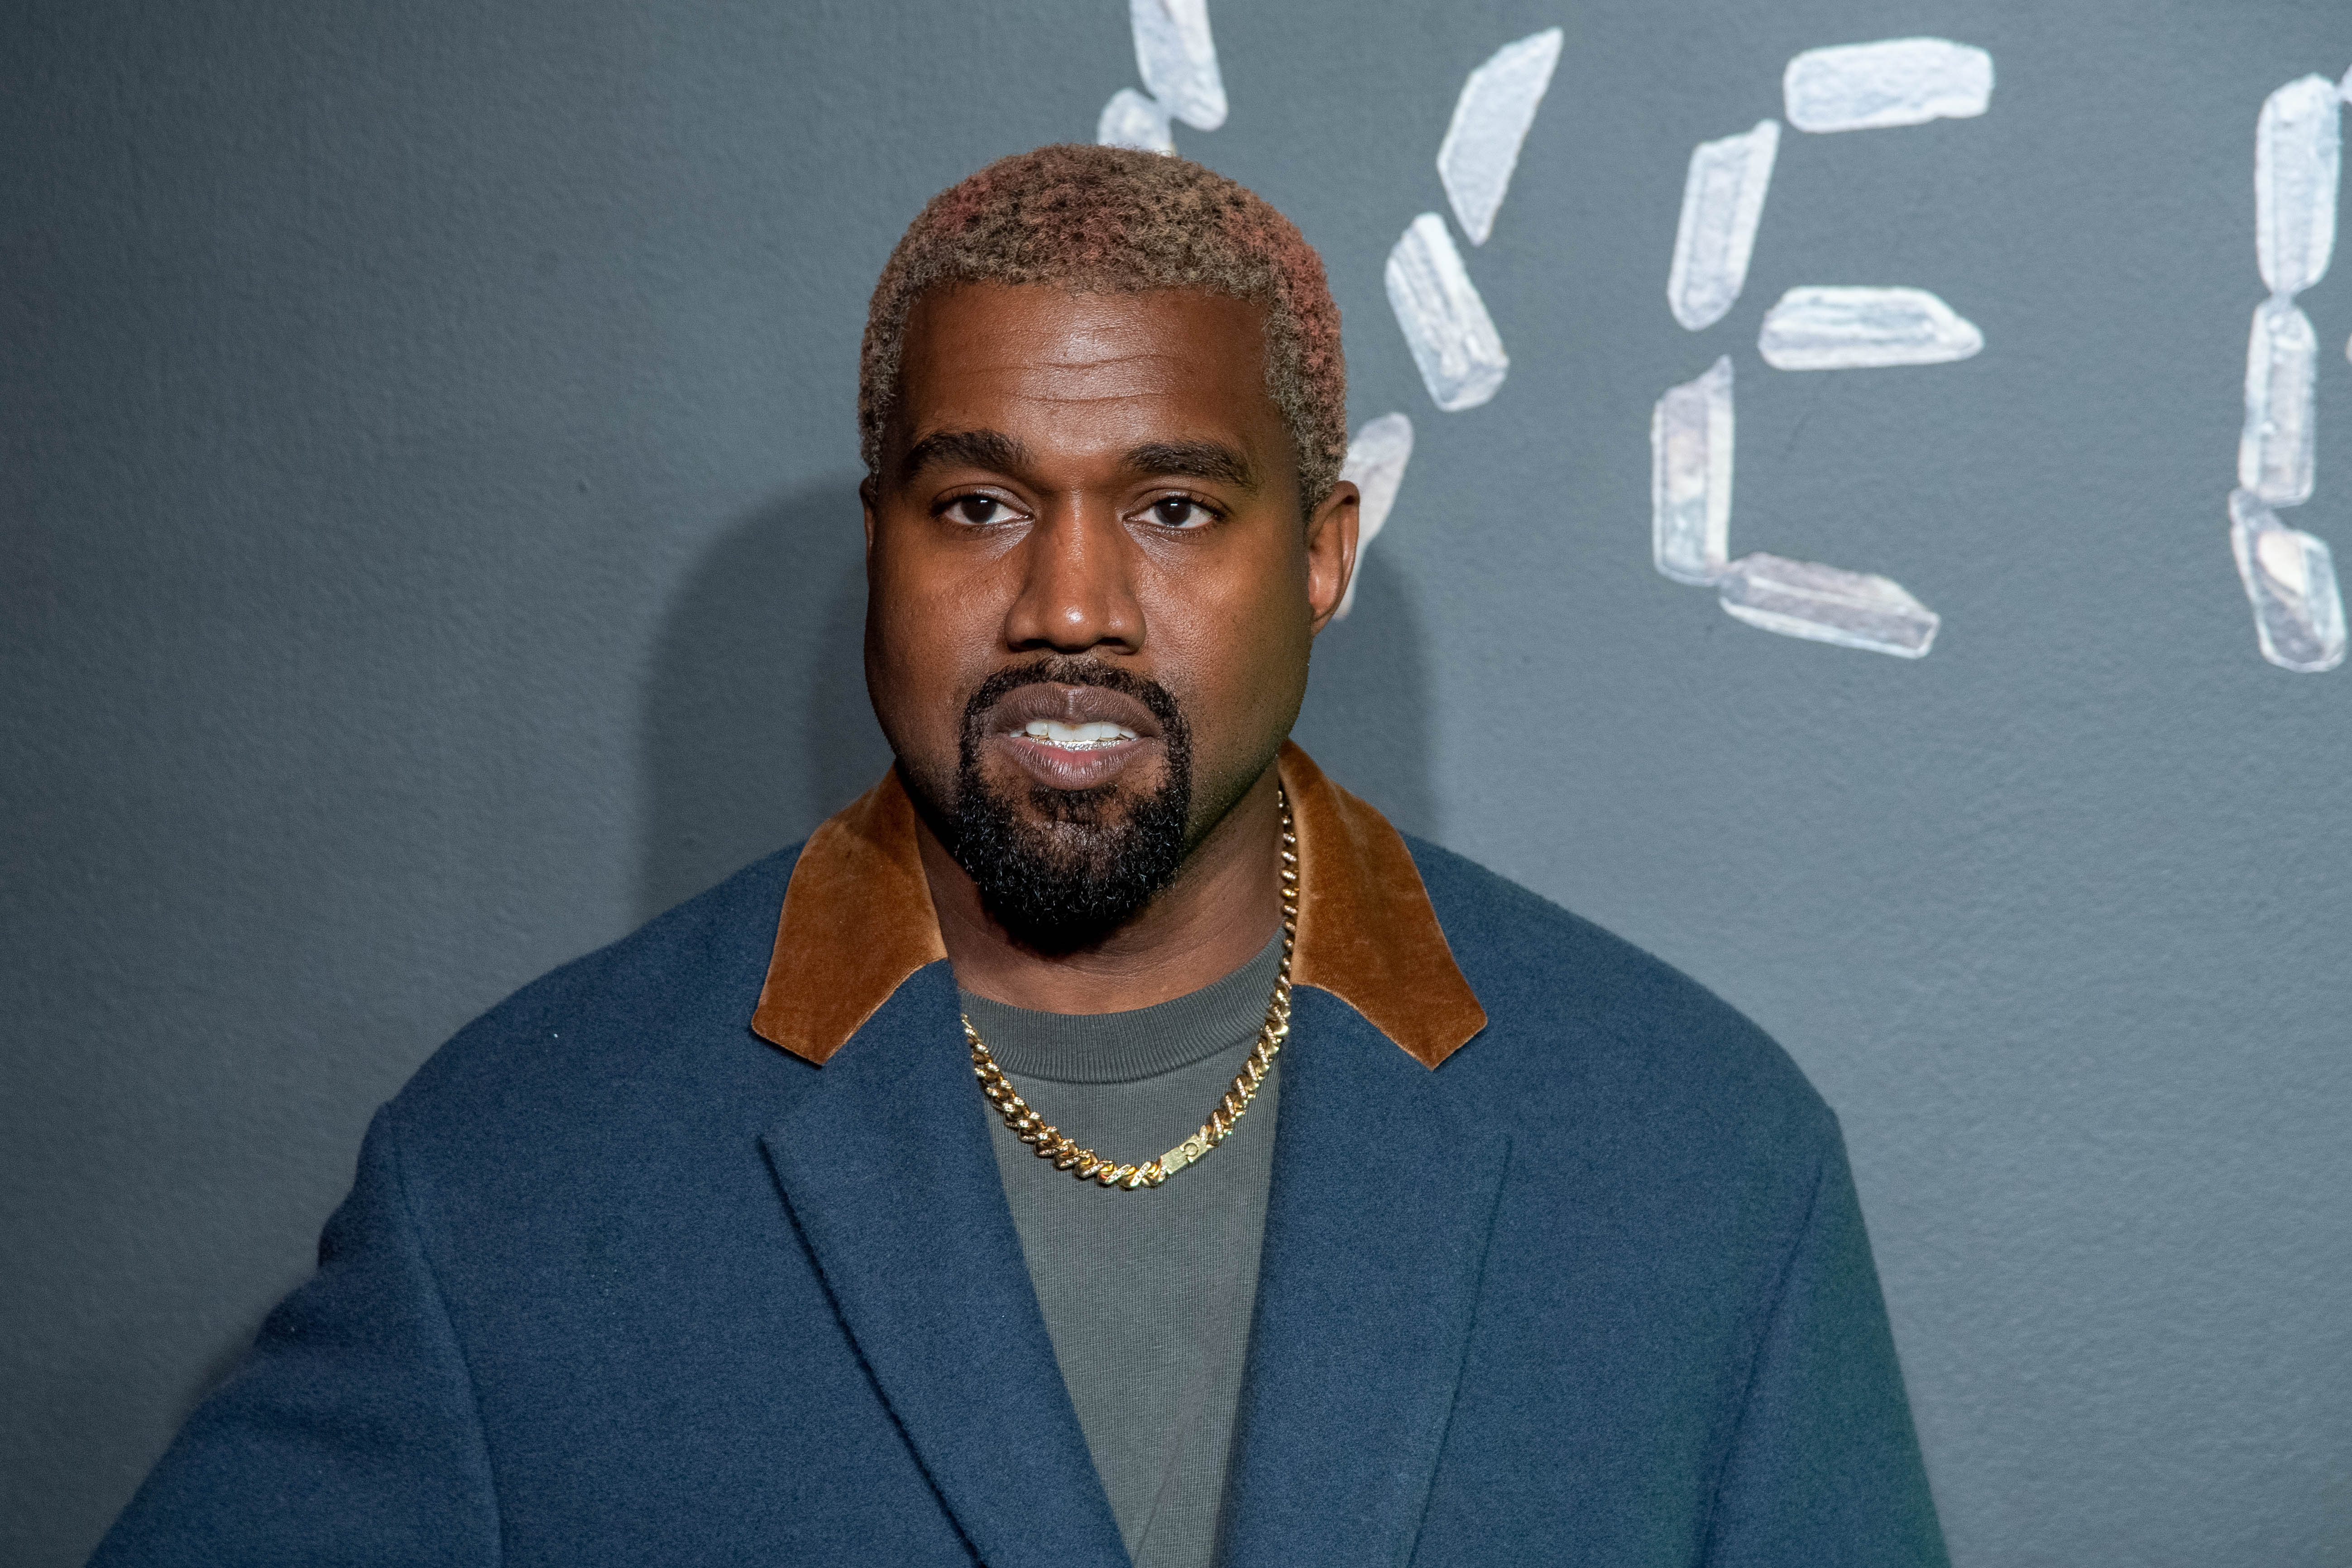 Kanye Breaks Down In Tears During Presidential Rally, Yells At Fan, Criticizes Harriet Tubman, Speaks On Abortion & Gun Control